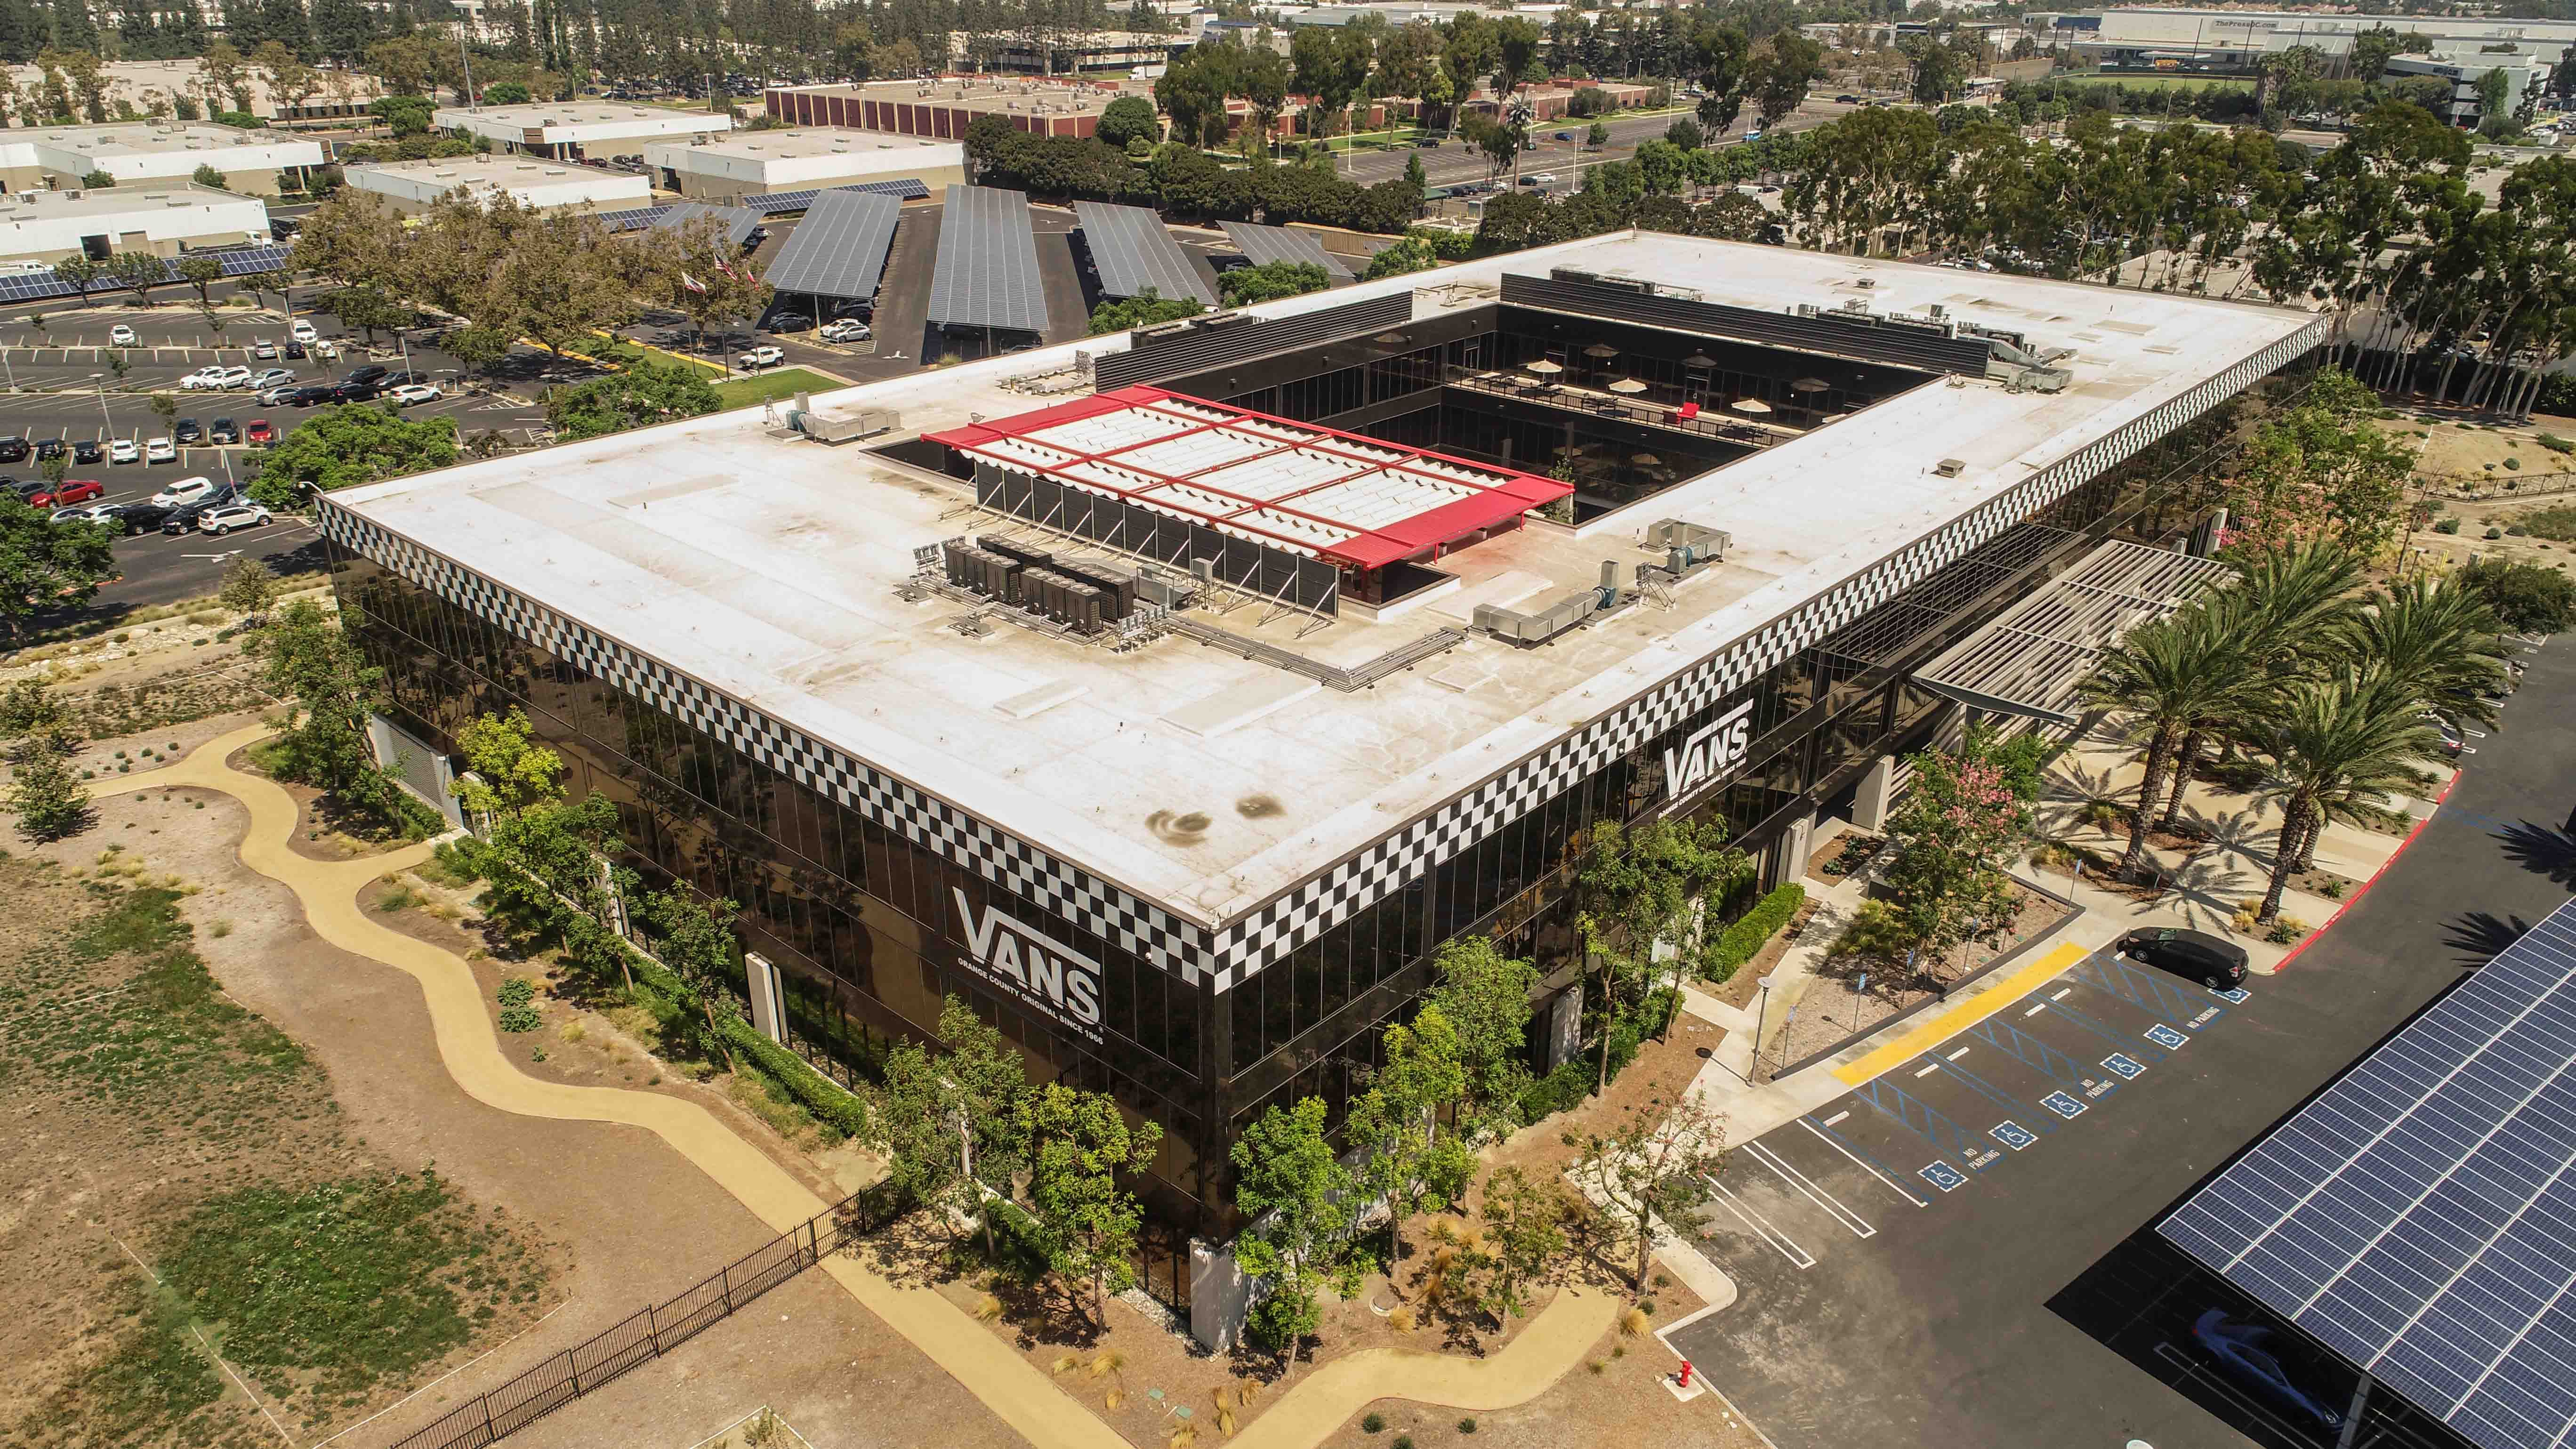 Expansive Rooftop Canopy Shielding The Employee Lounge At The New Vans Hq In Costa Mesa Ca Aerial Photo Aerial Photo Rooftop Canopy